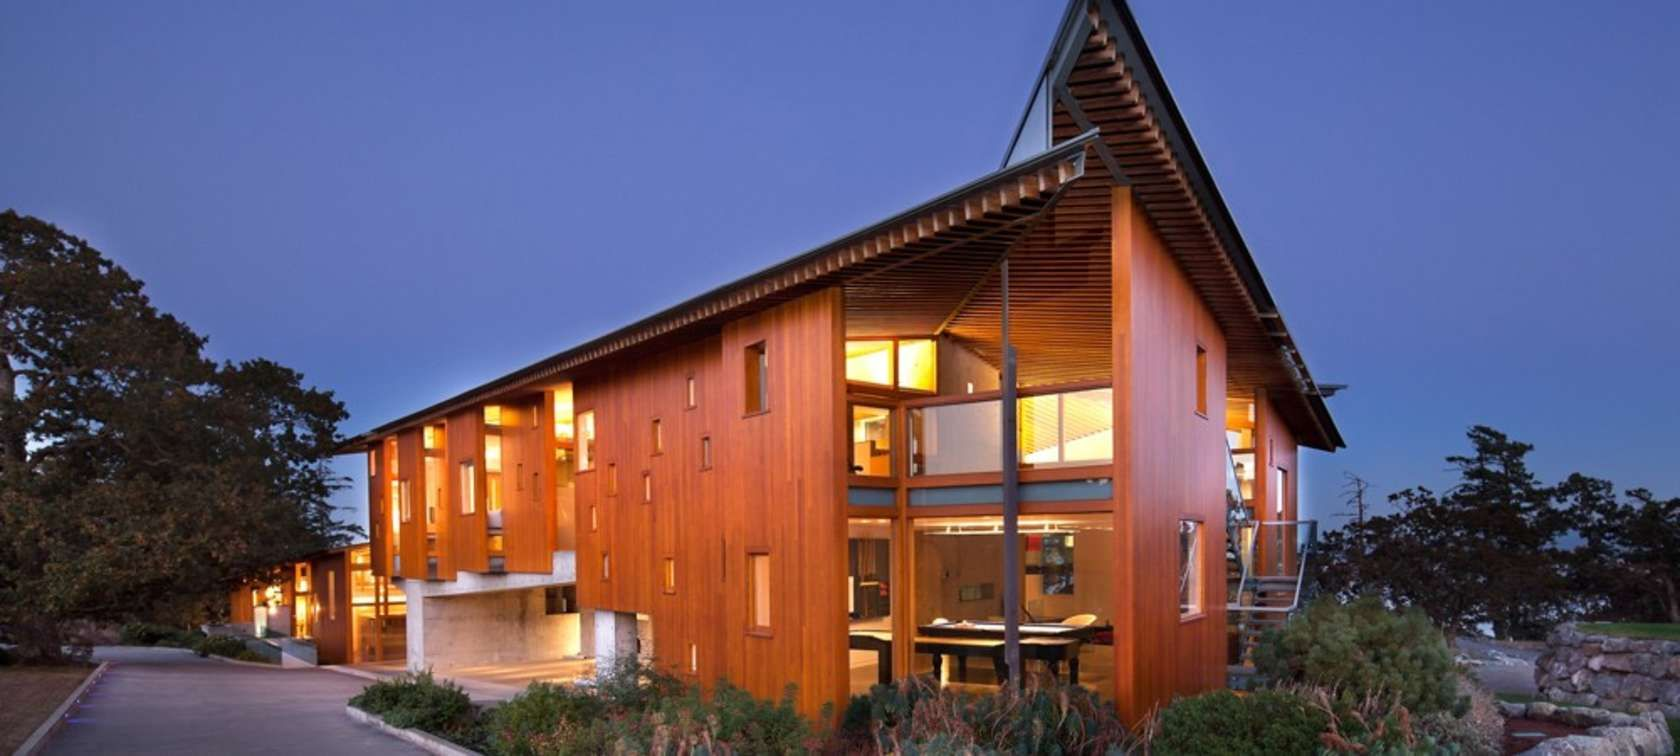 Swanwick Road by Marko Simcic, Victoria, Canada   Wood on House ...